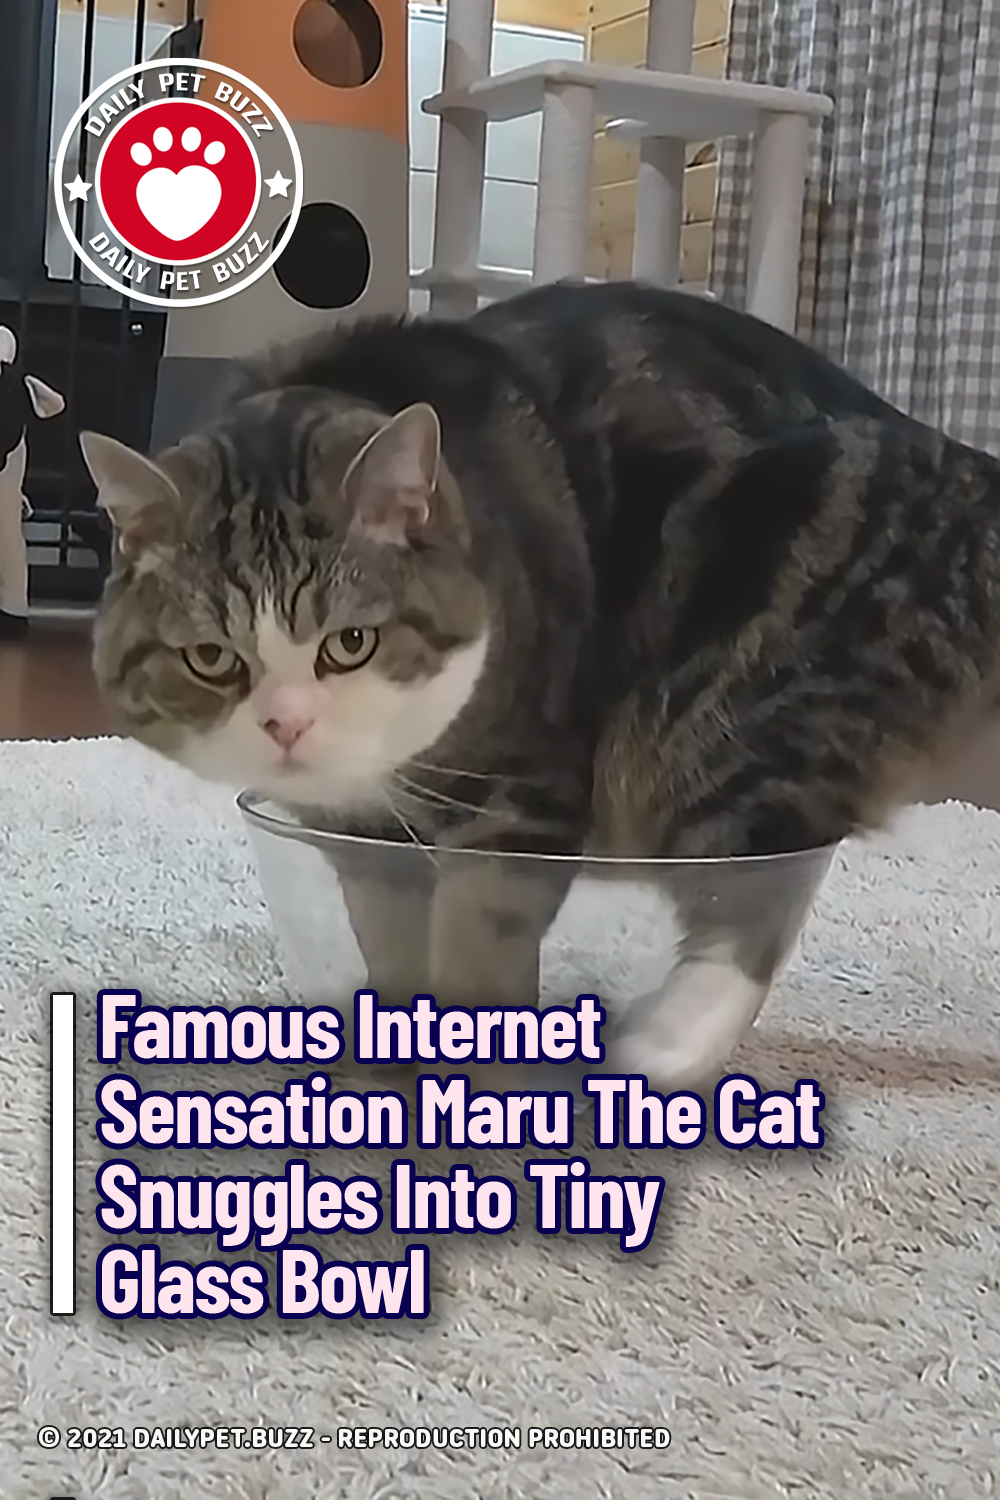 Famous Internet Sensation Maru The Cat Snuggles Into Tiny Glass Bowl